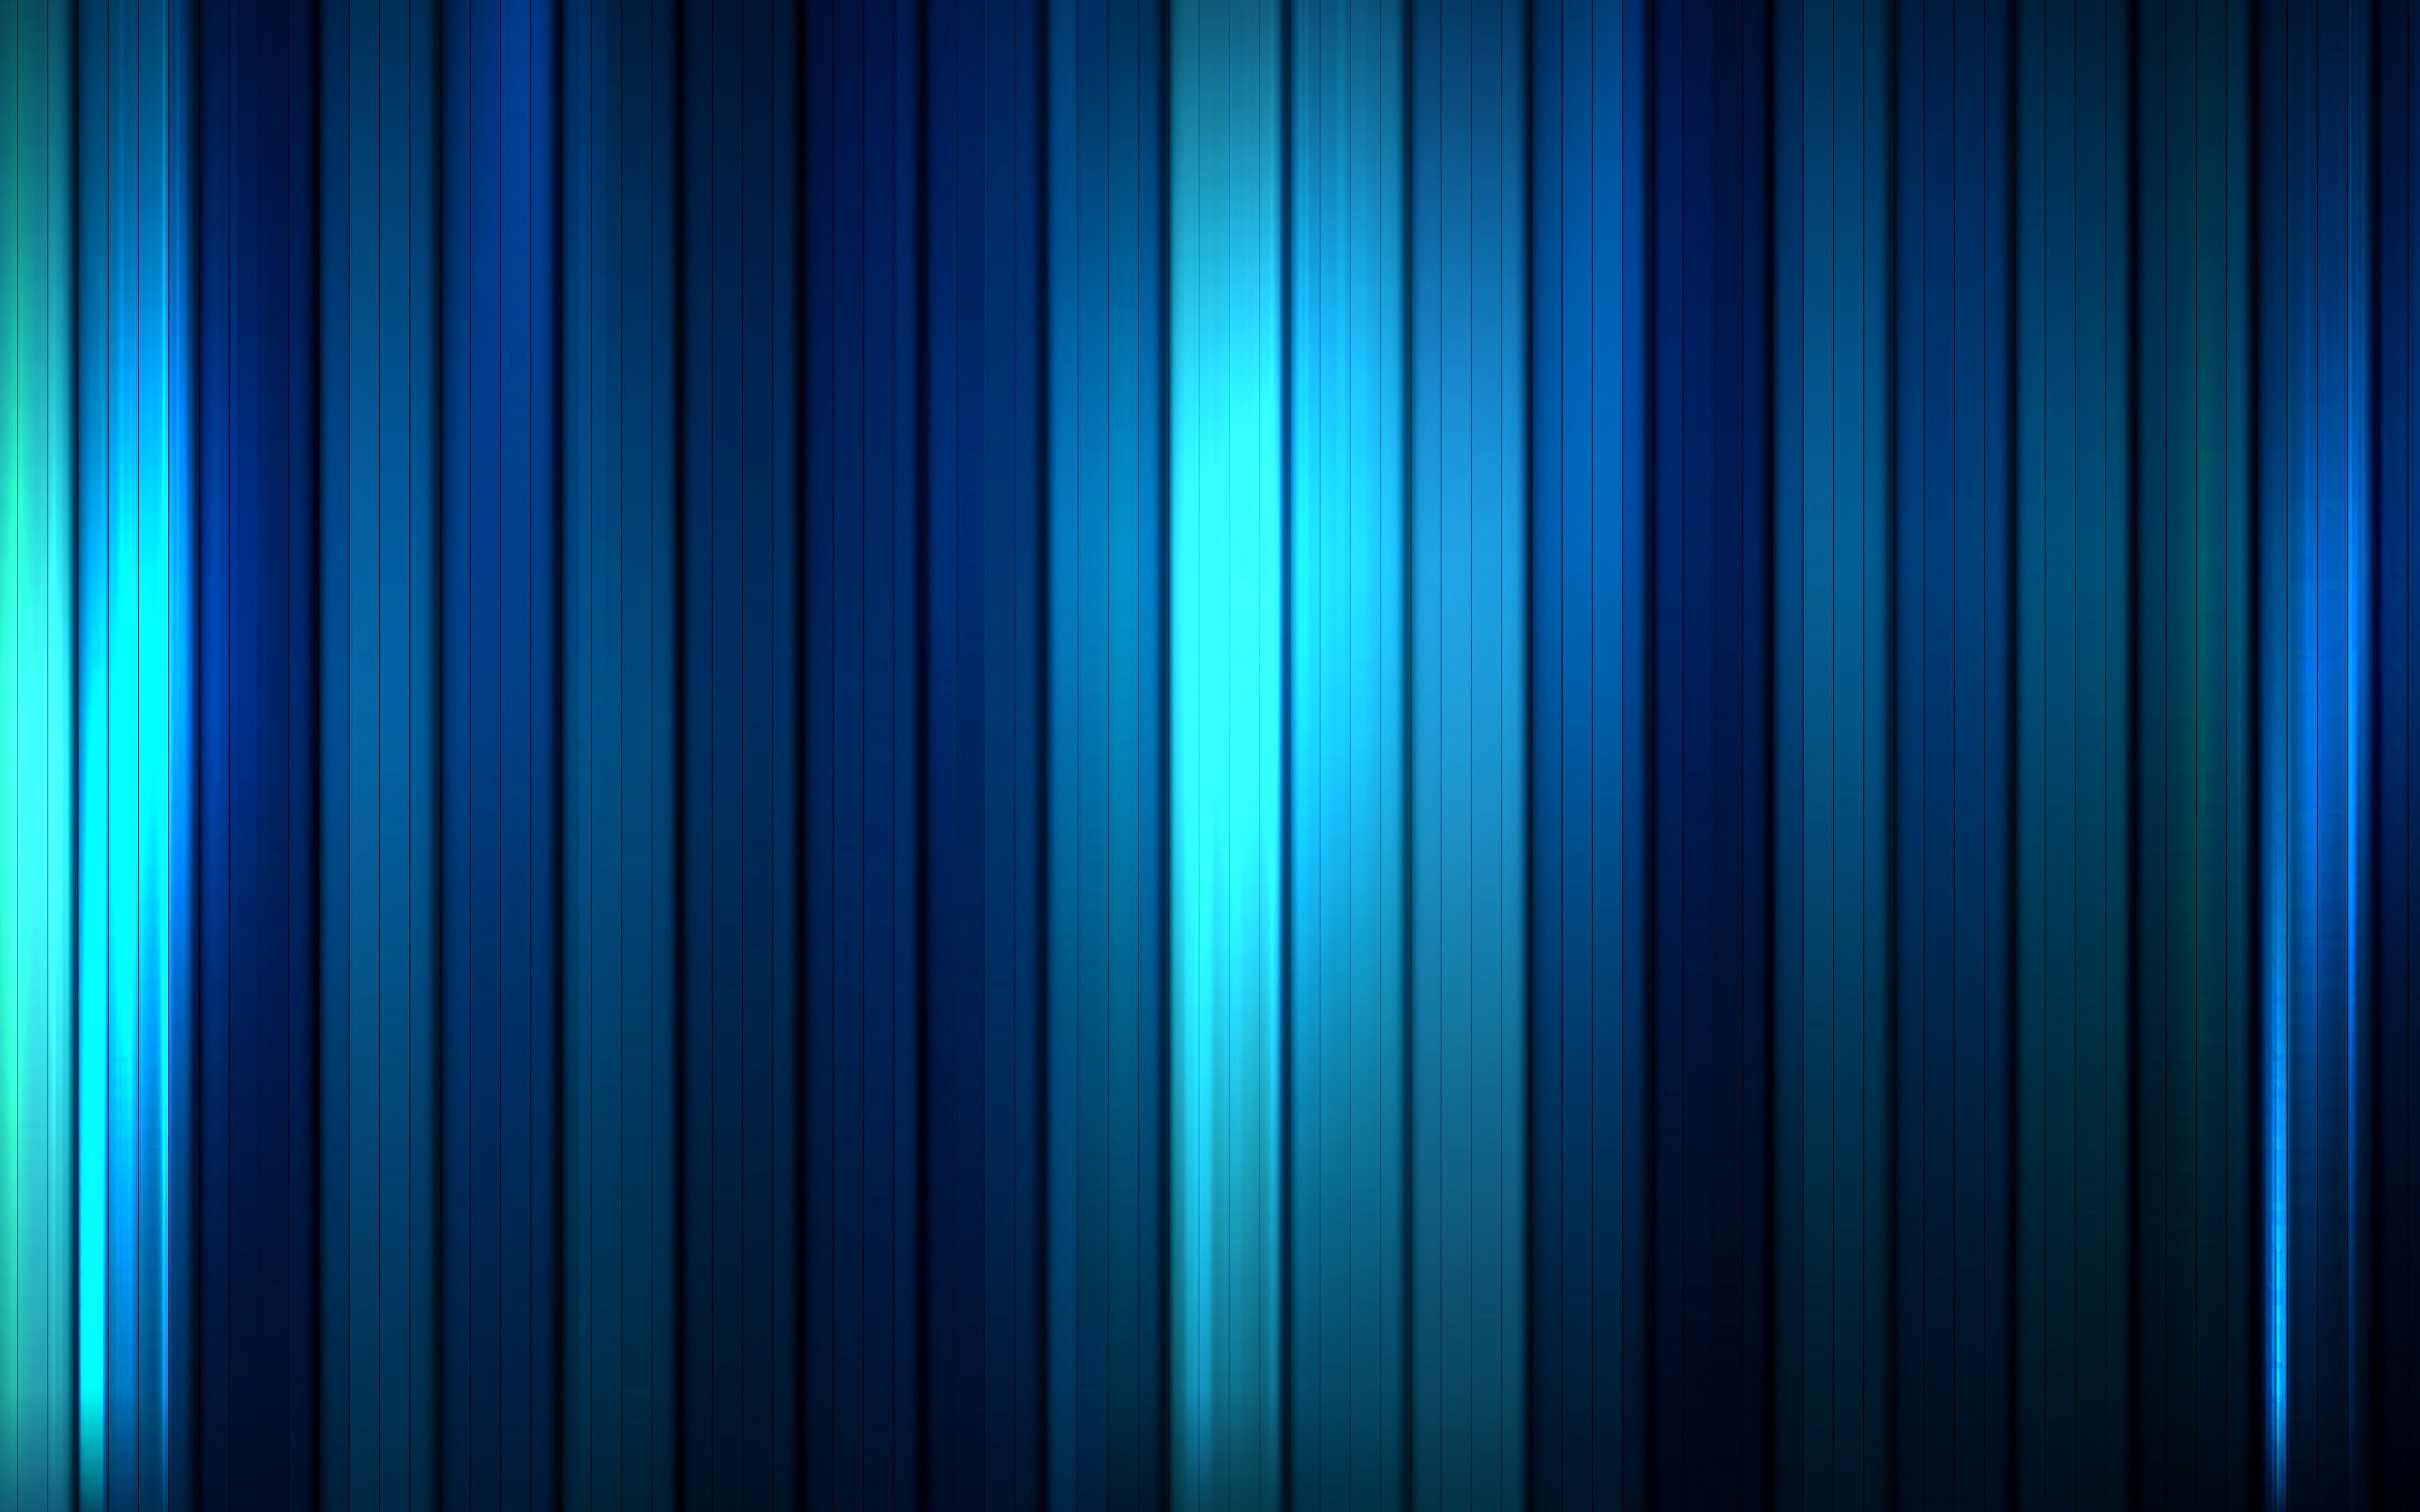 Vertical blue stripes wallpapers Vertical blue stripes stock photos